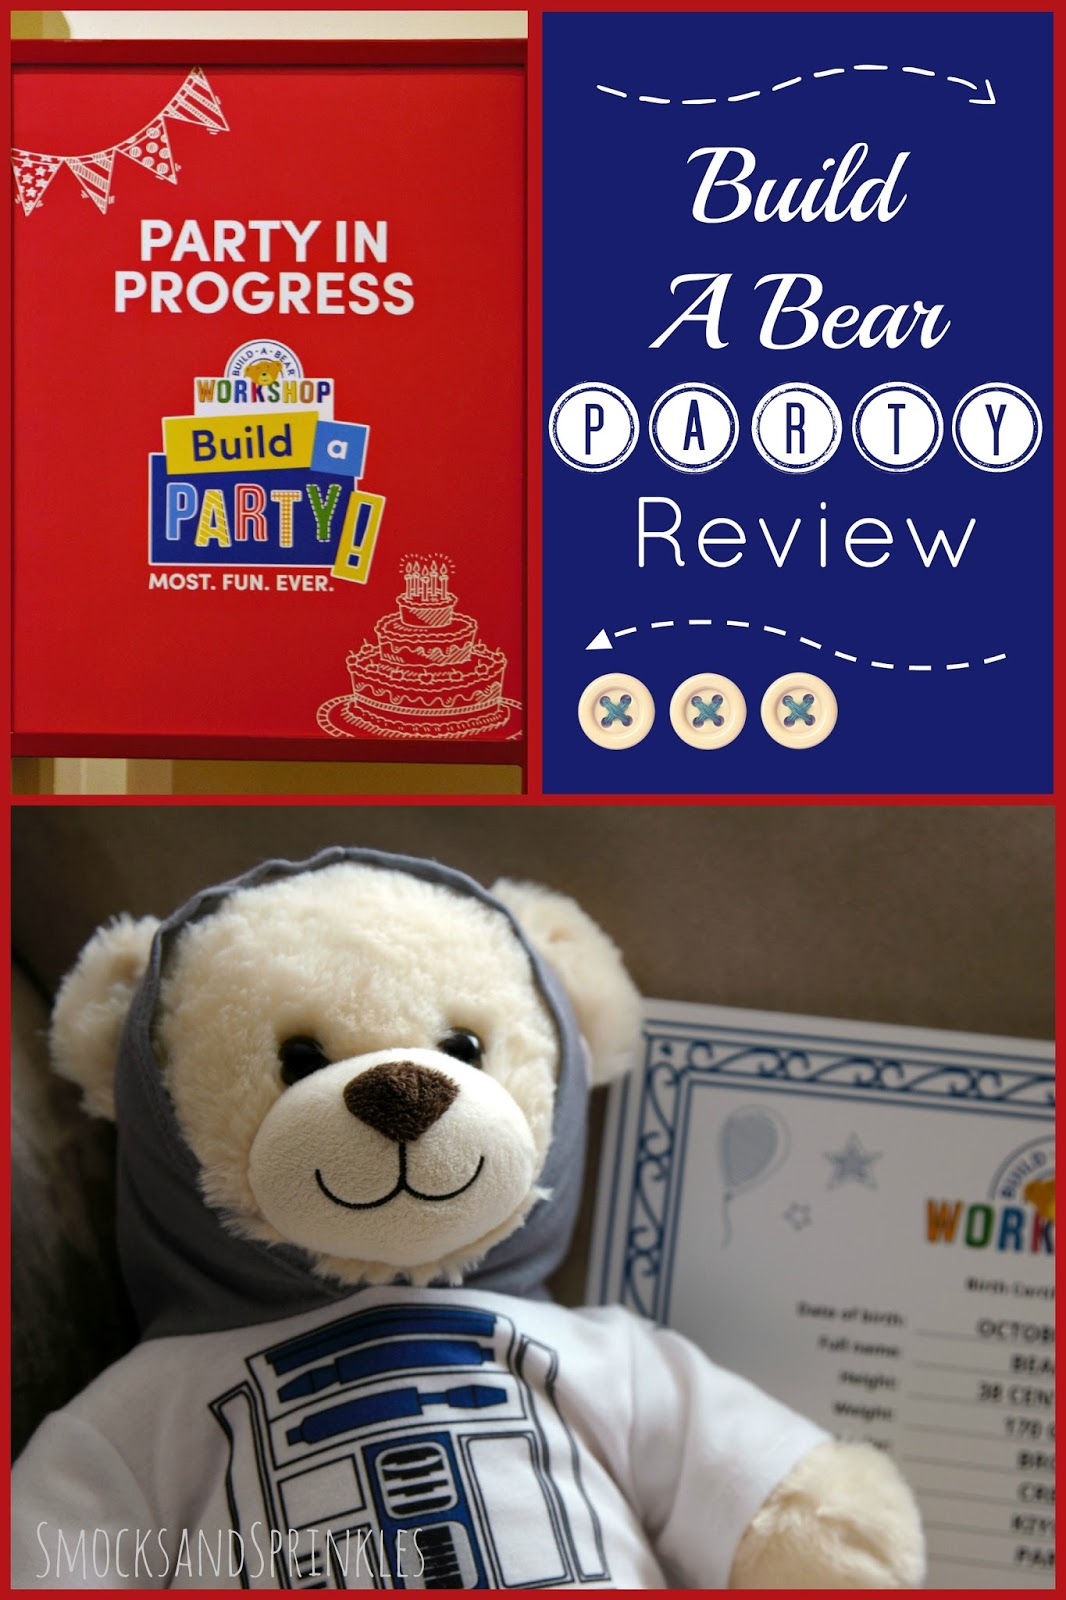 Build The Bear: Smocks And Sprinkles: Build-a-Bear Birthday Party Review